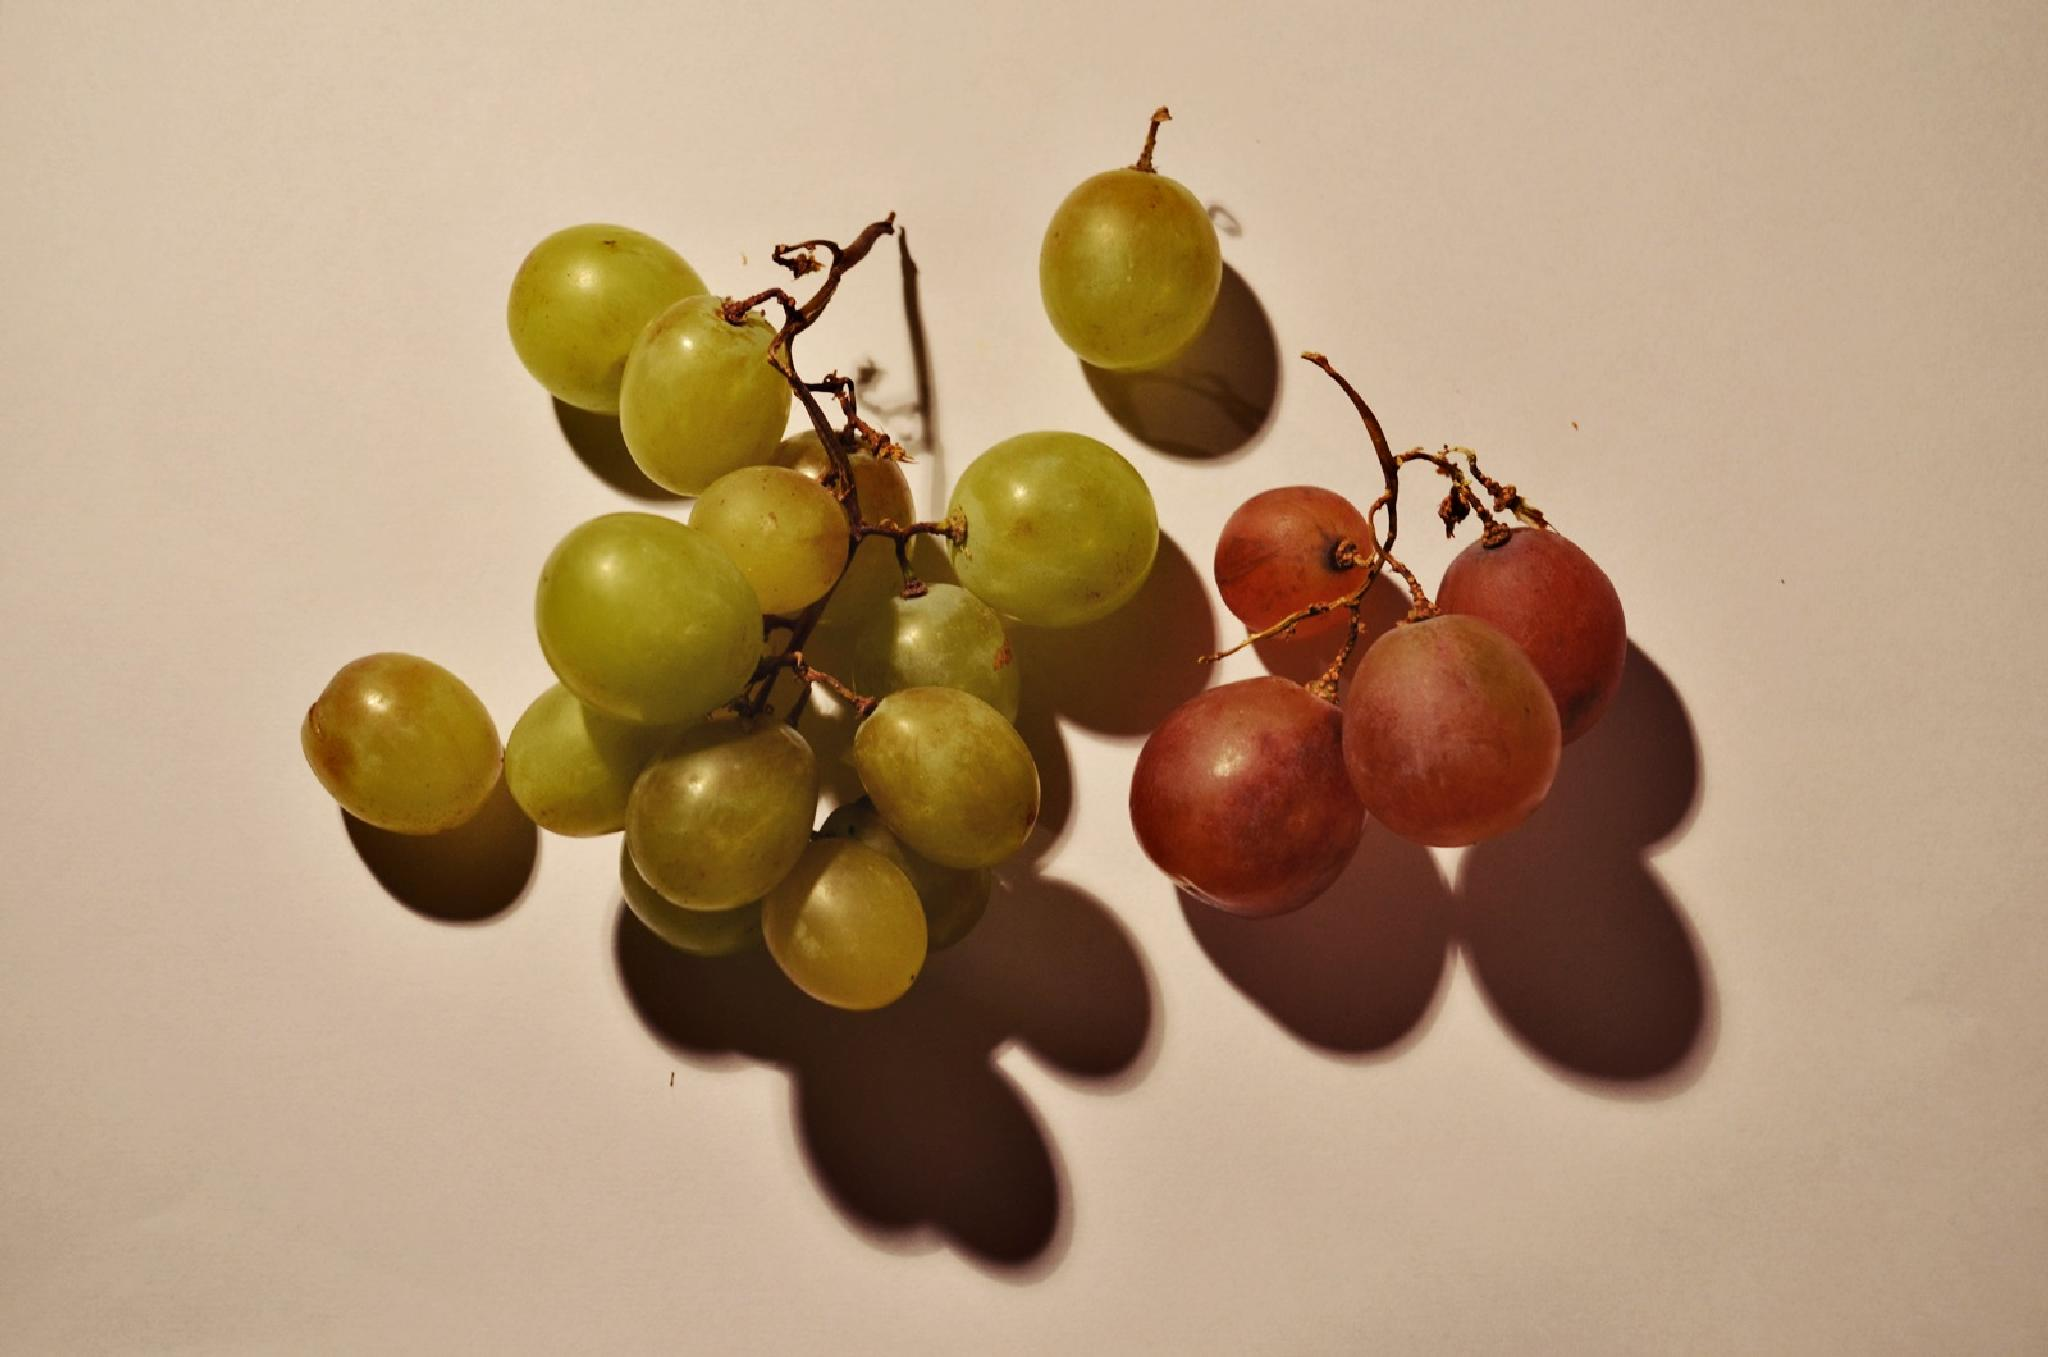 Grapes by waaterproof